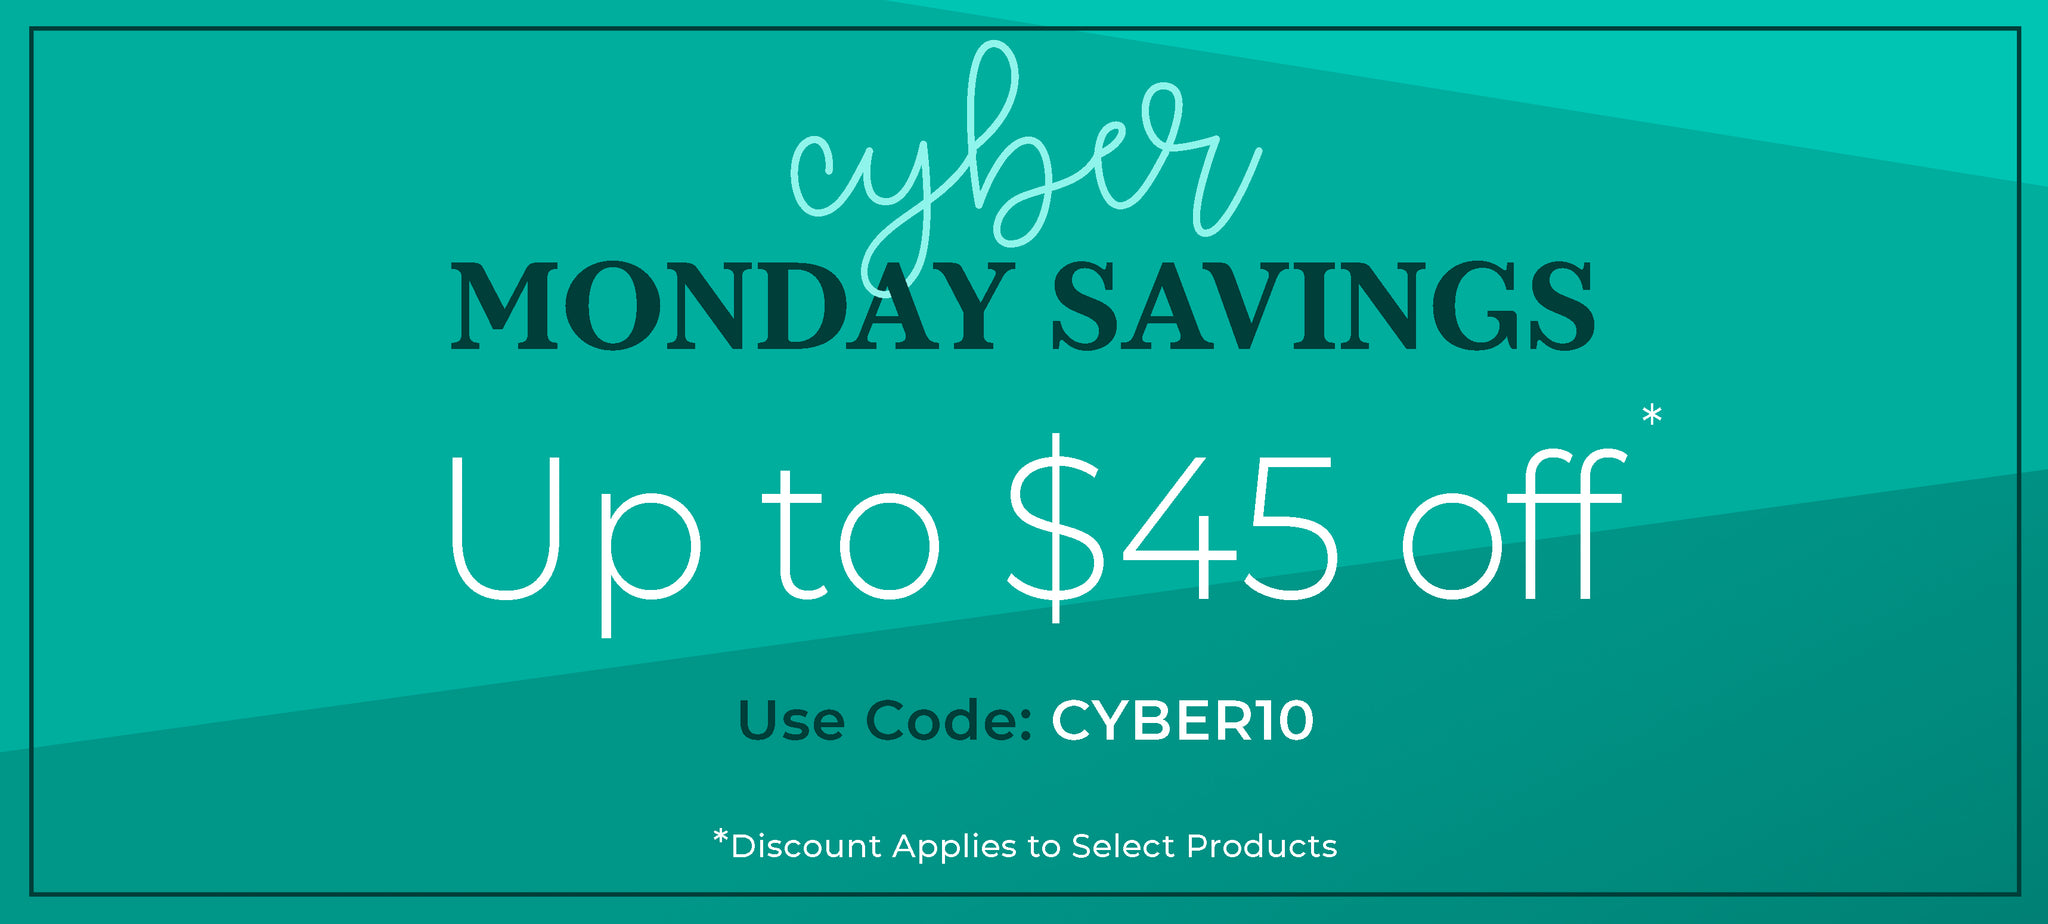 Cyber Monday deals page page banner. Save 10% on select items.